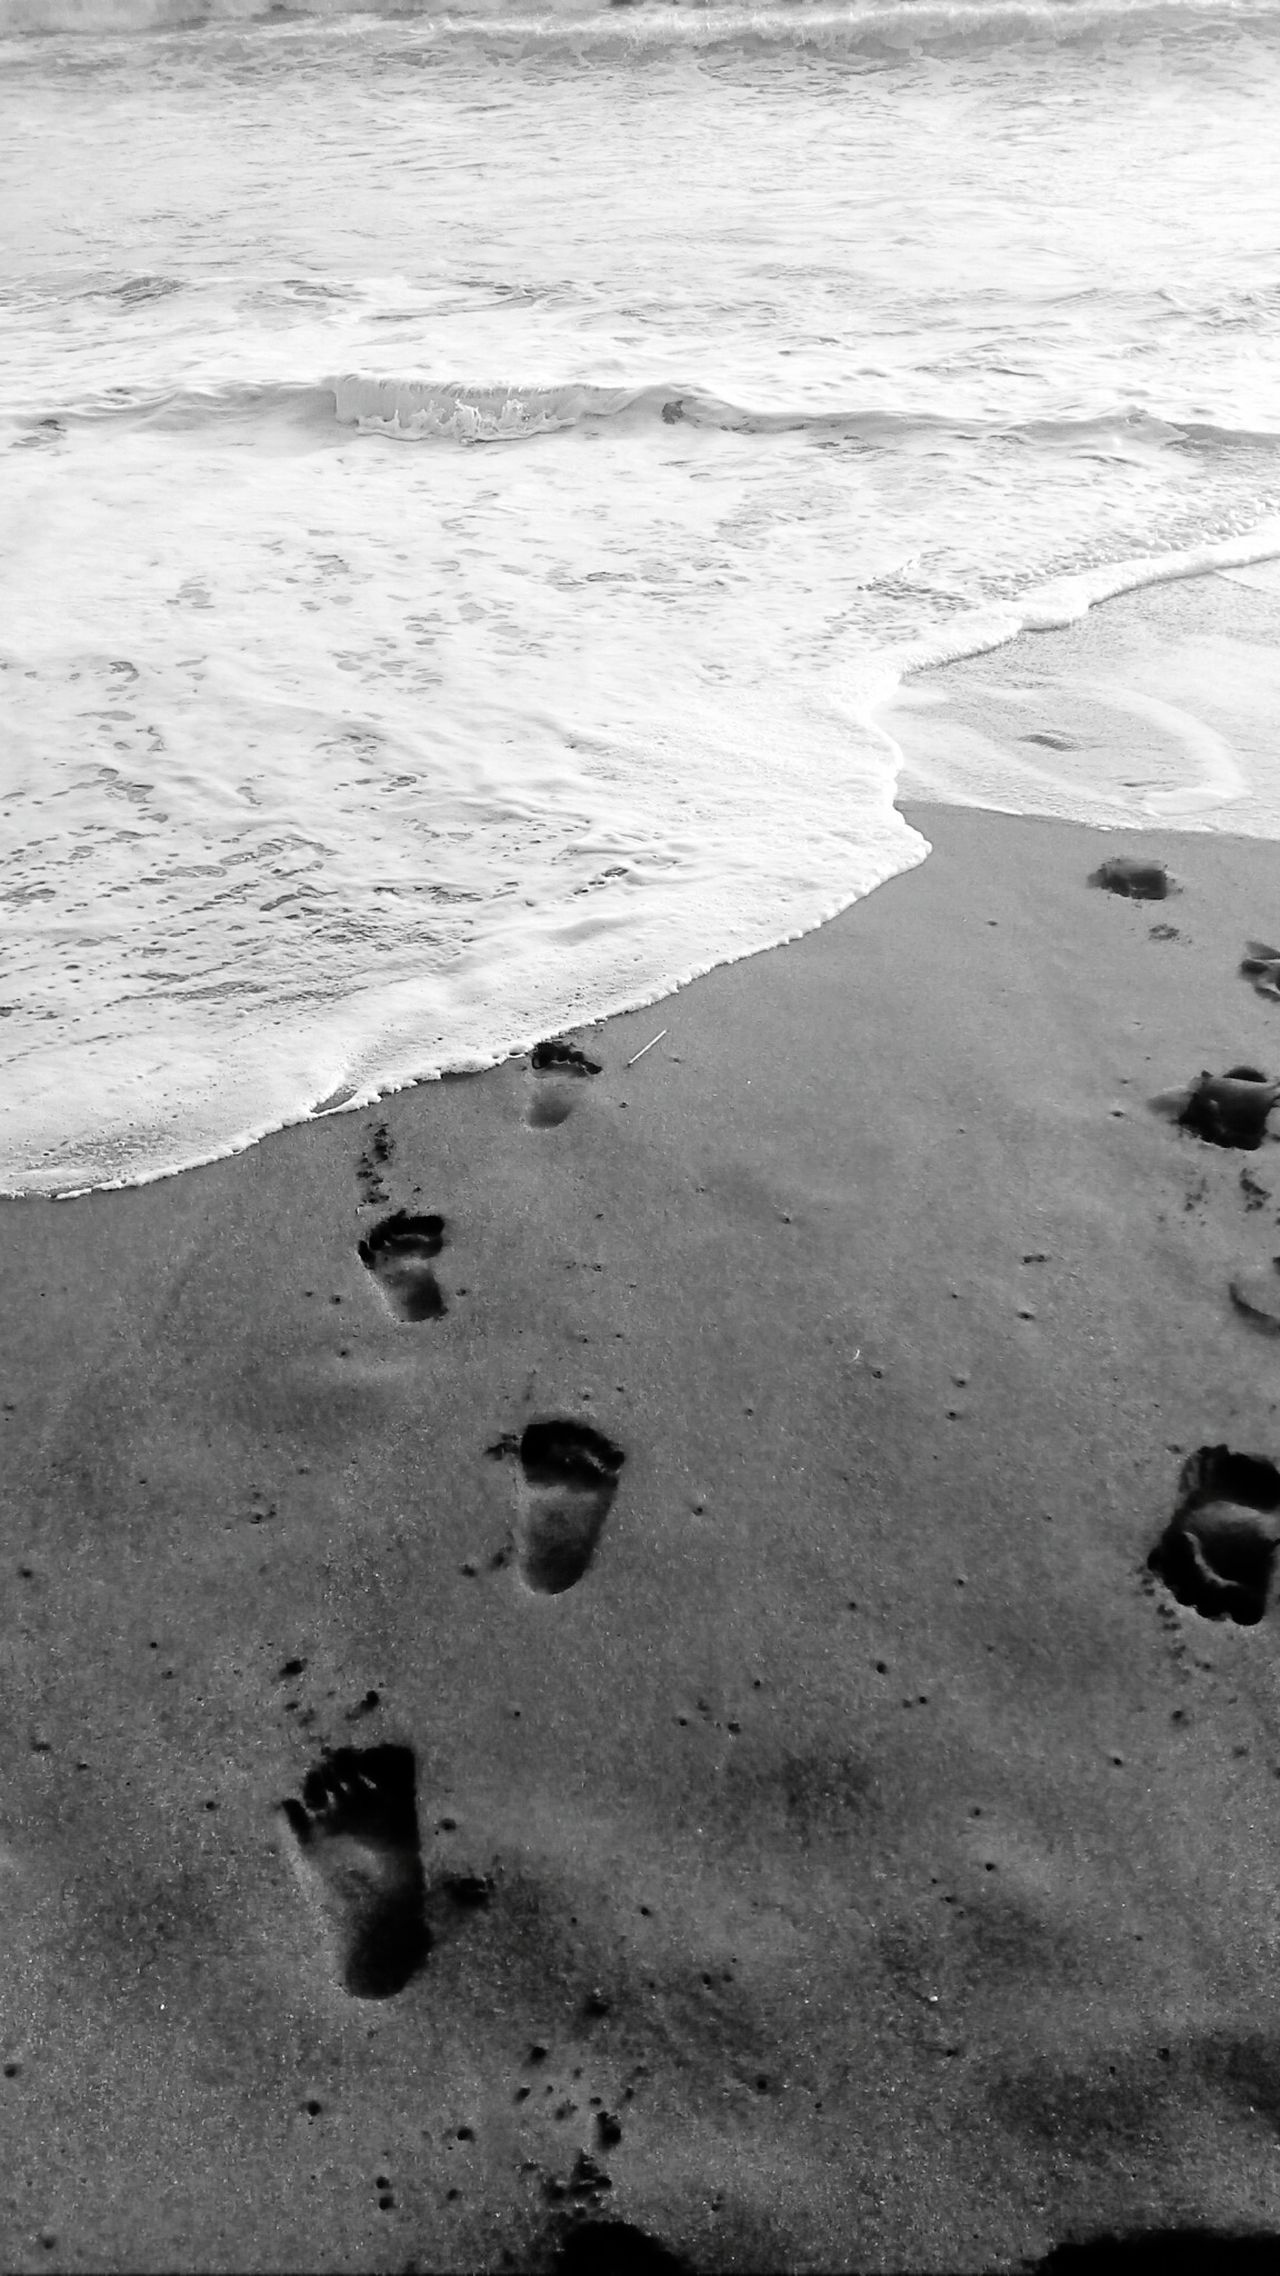 Footprints in the sand Beach Sand Nature Outdoors No People Philippines Eyeem Philippines Blackandwhite Mobilephotography Mobilephotographyphilippines Snoworld.one/bestshot The Great Outdoors - 2017 EyeEm Awards